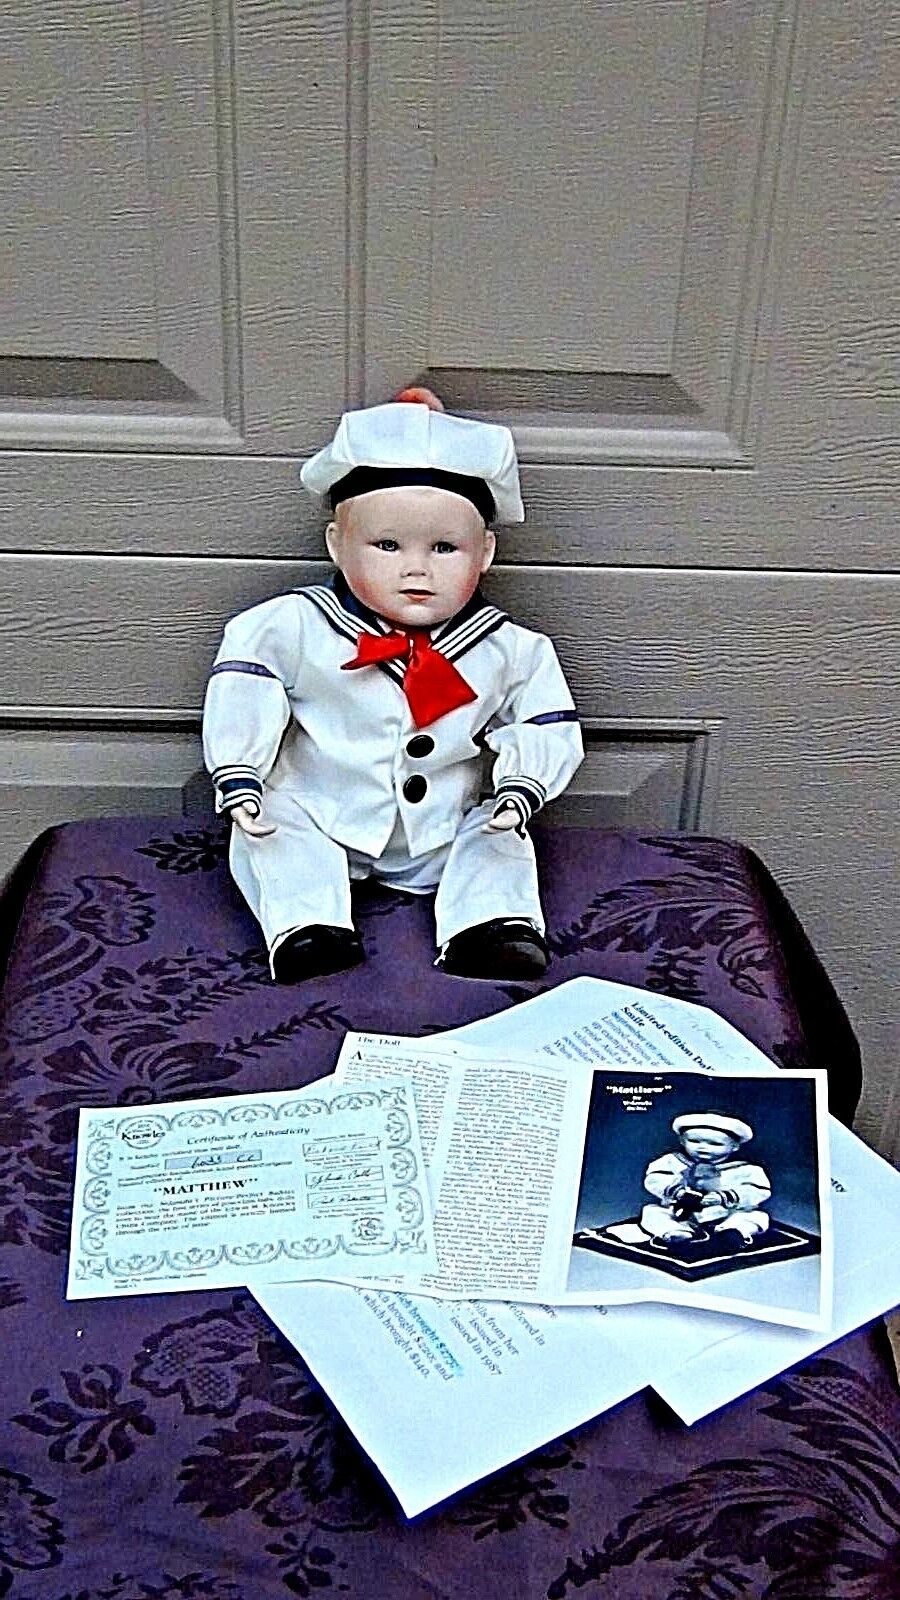 "PORCELAIN COLLECTABLE DOLL:MATTHEW"" SAIL BOY by YOLANDA BELLO C.O.A.&NUMBERED"